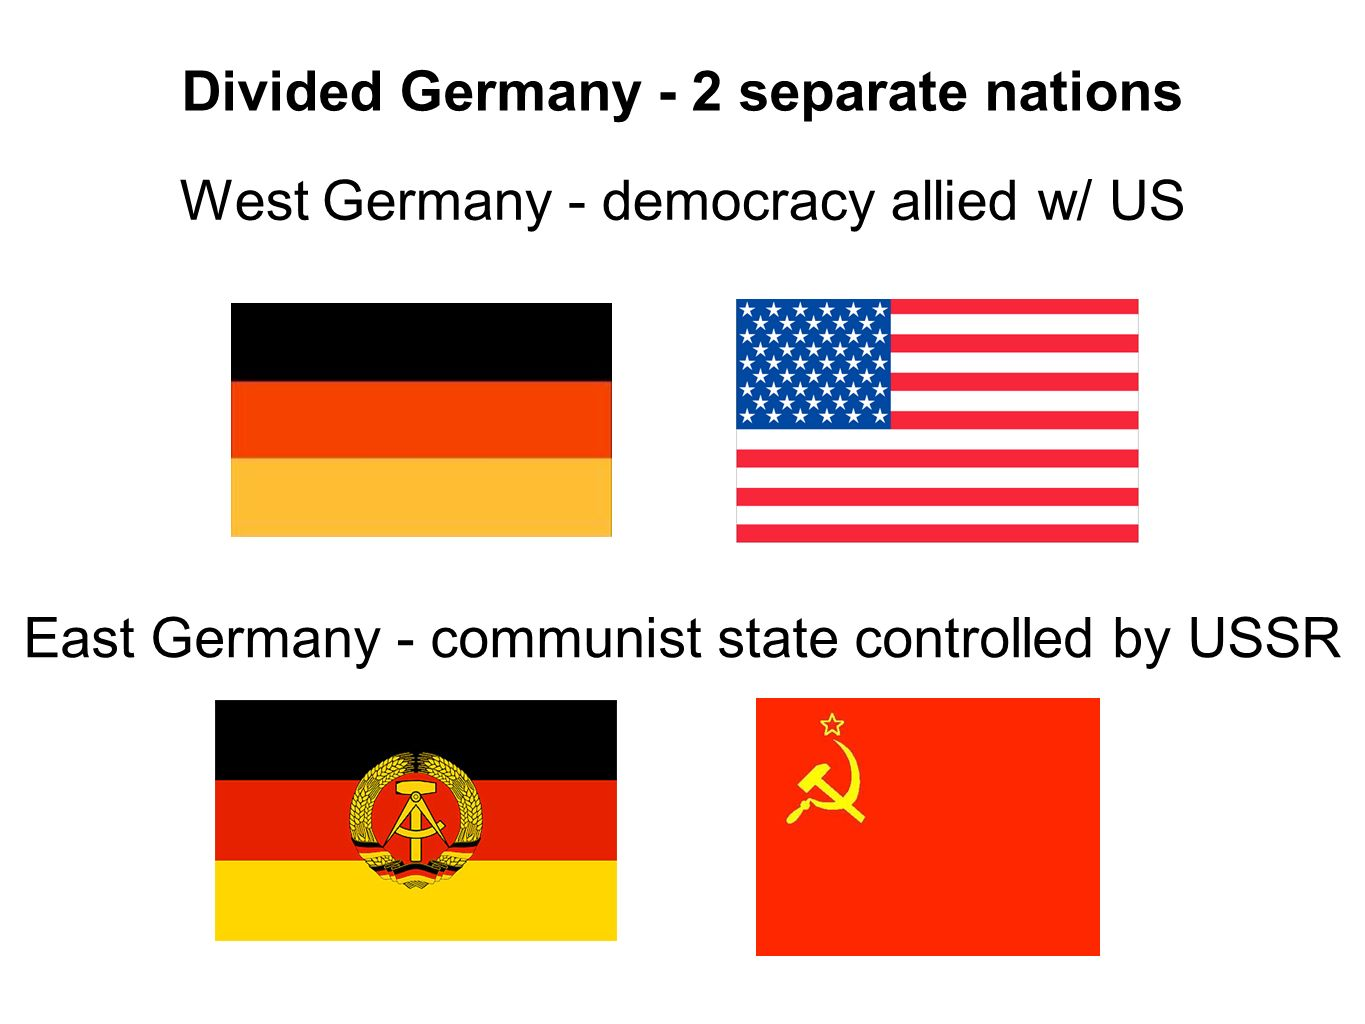 Divided Germany - 2 separate nations West Germany - democracy allied w/ US East Germany - communist state controlled by USSR